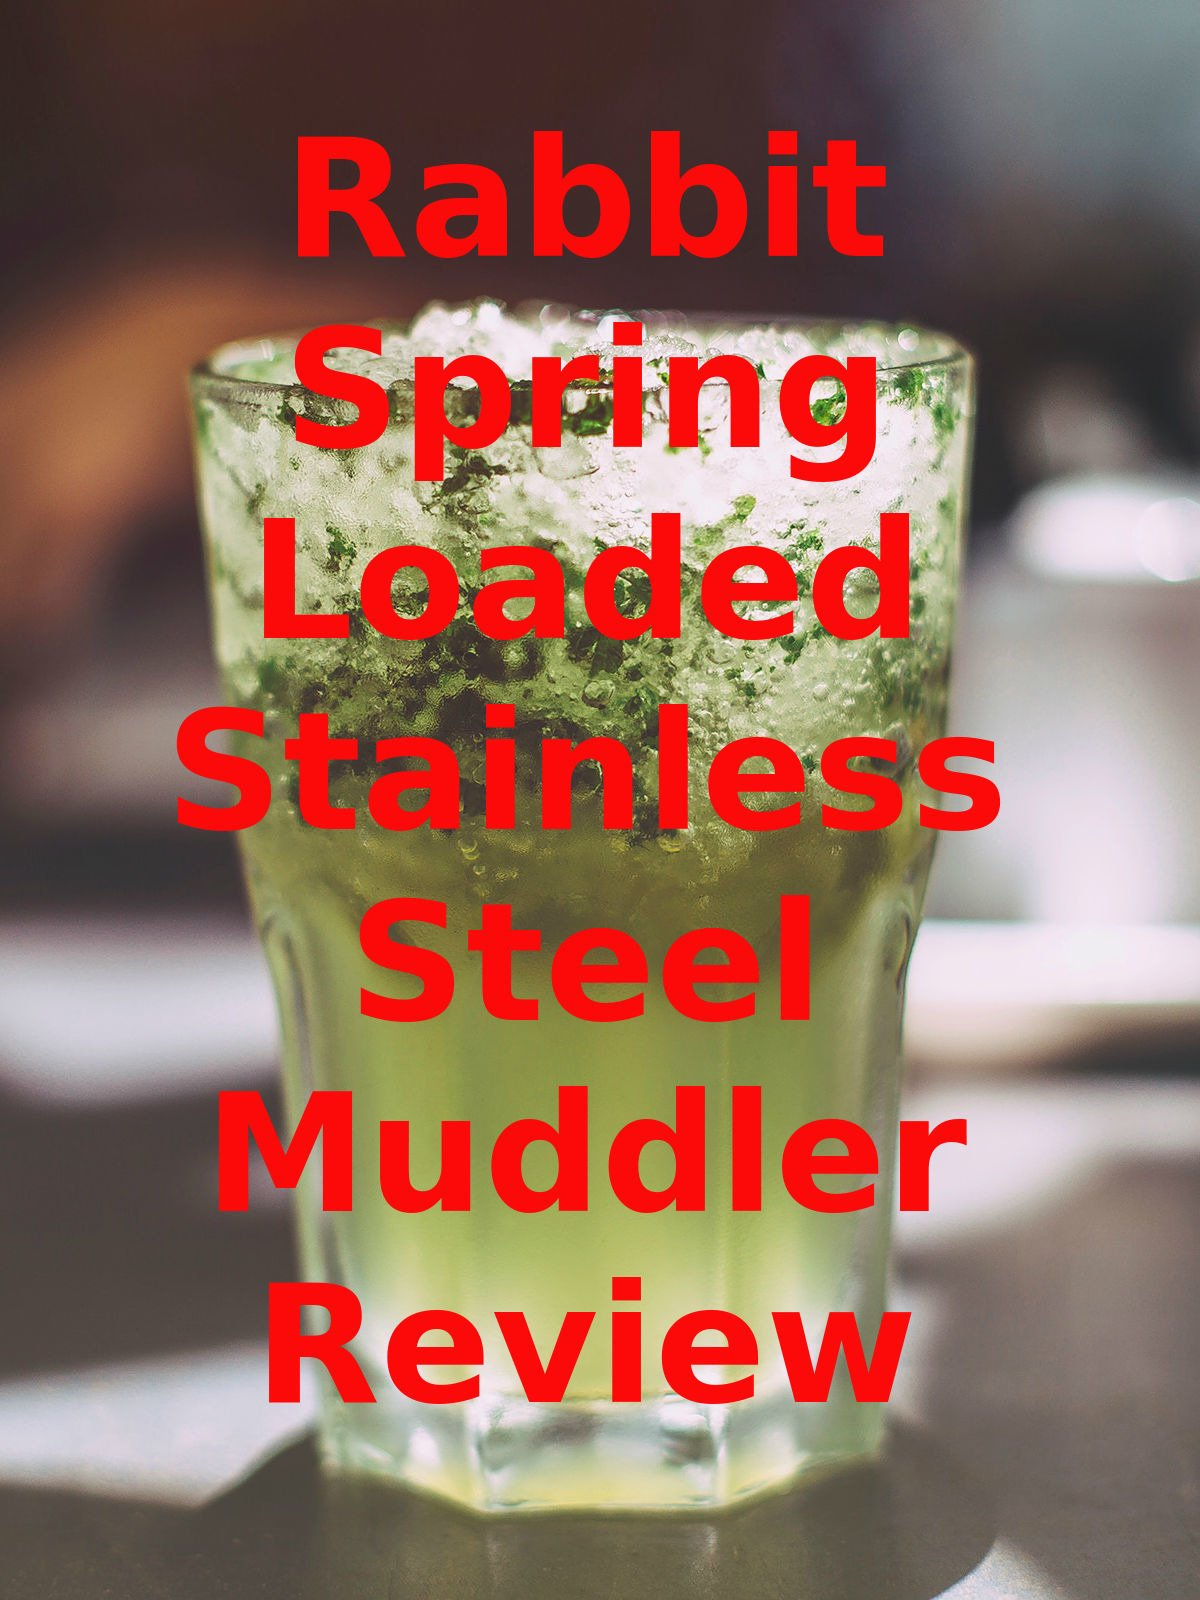 Review: Rabbit Spring Loaded Stainless Steel Muddler Review on Amazon Prime Video UK